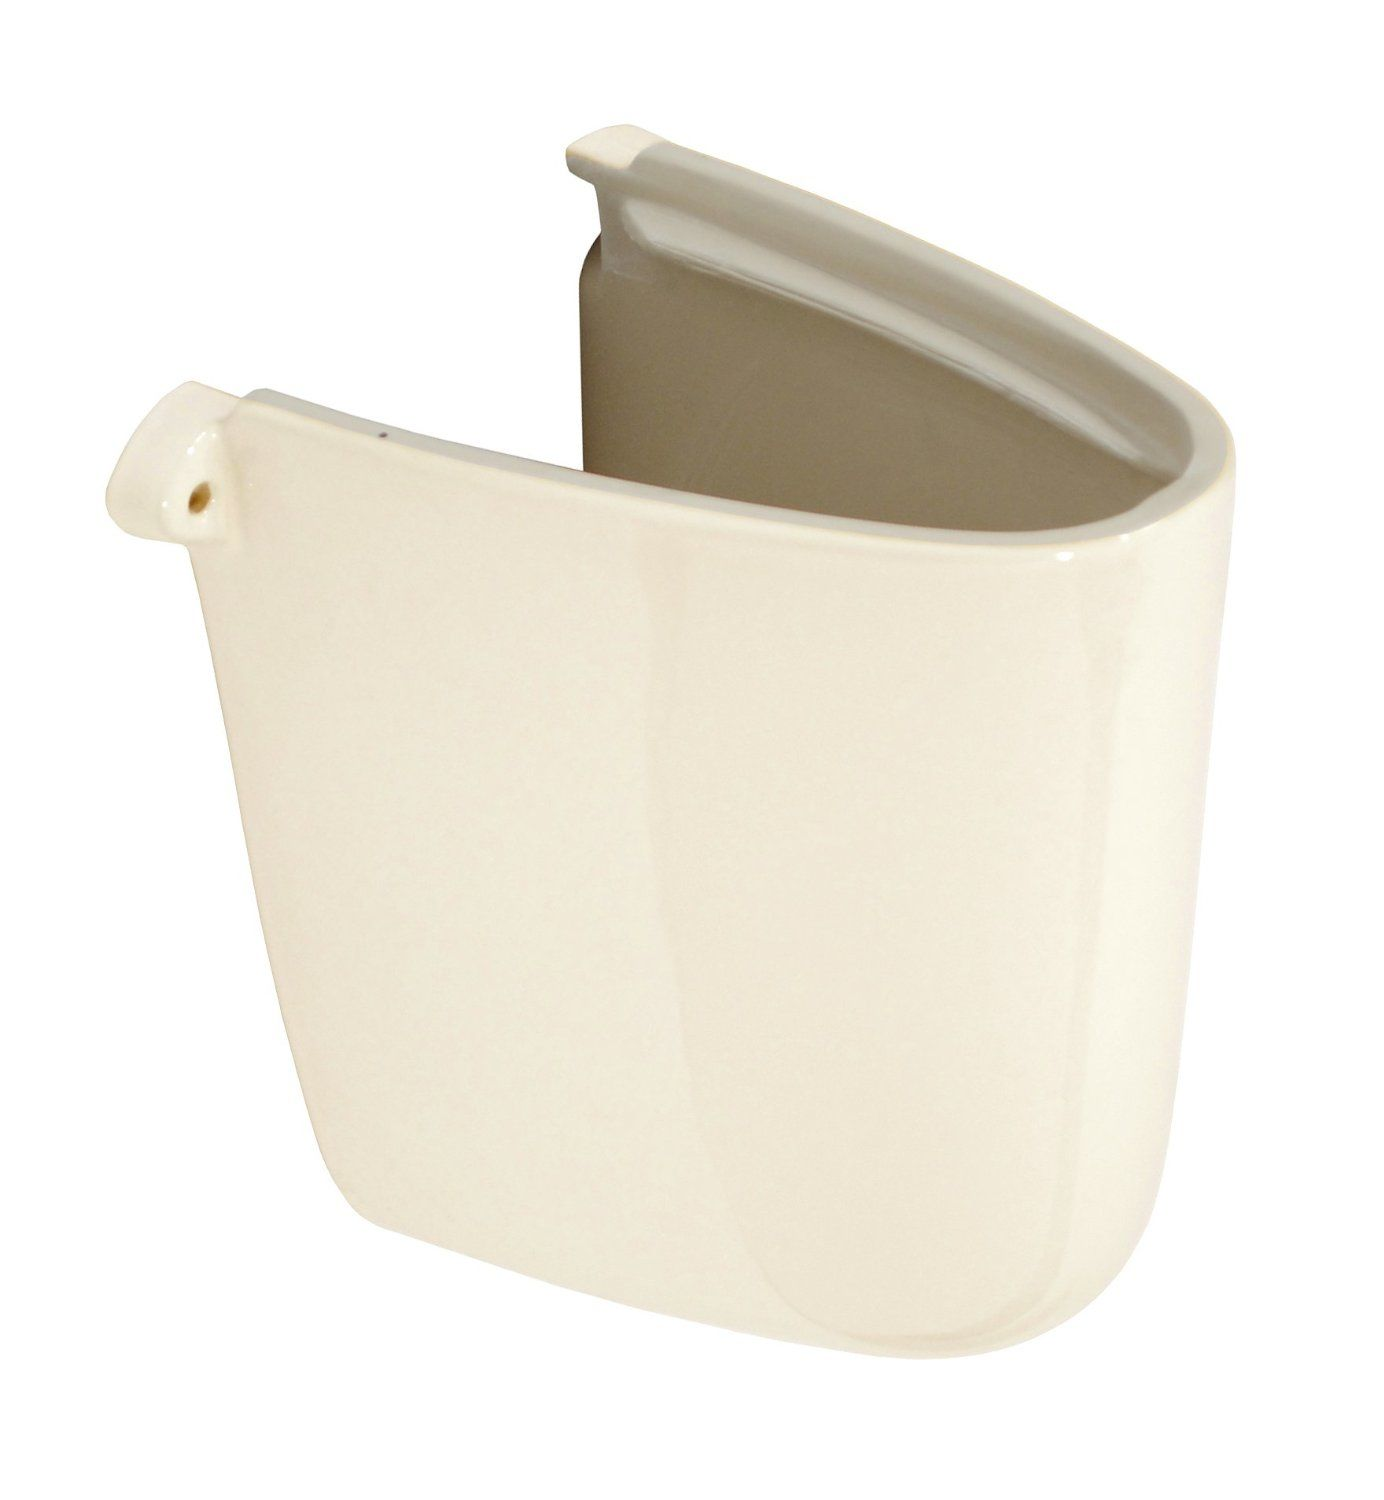 TOTO LPT241.8G-11 Supreme Lavatory and Pedestal with 8-Inch Centers Colonial White